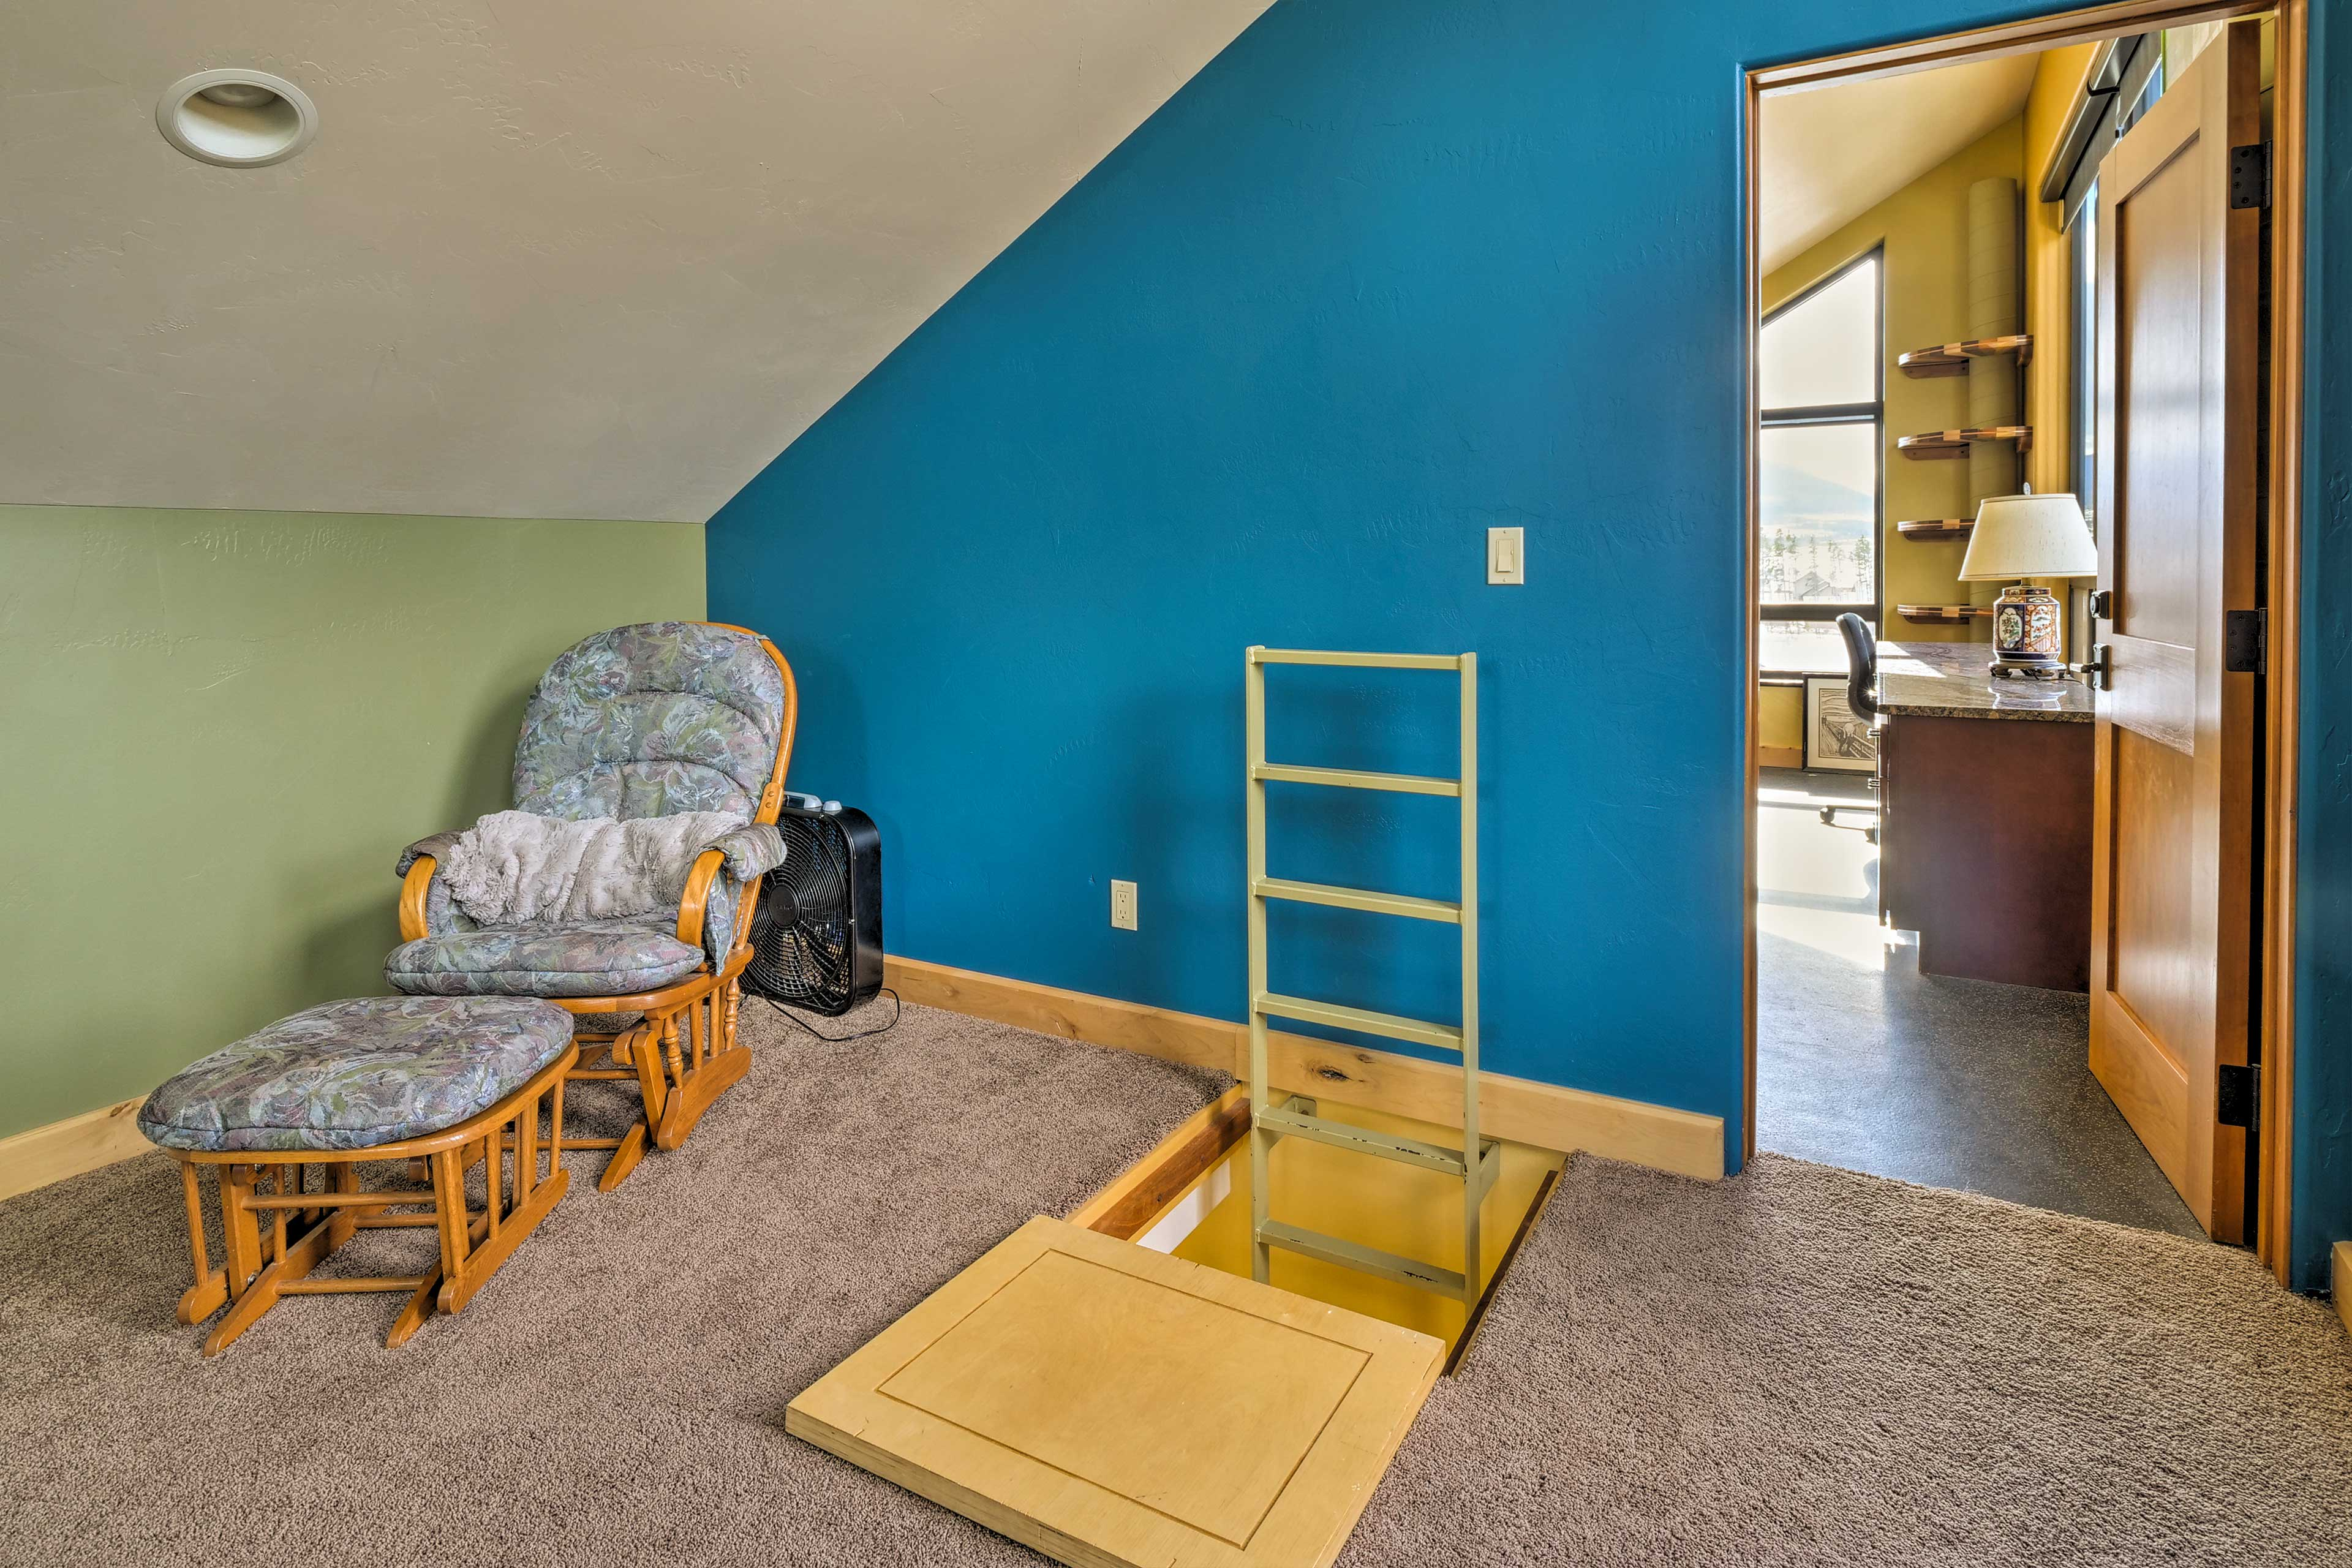 Climb the ladder through the trapdoor into the bunk house bedroom!